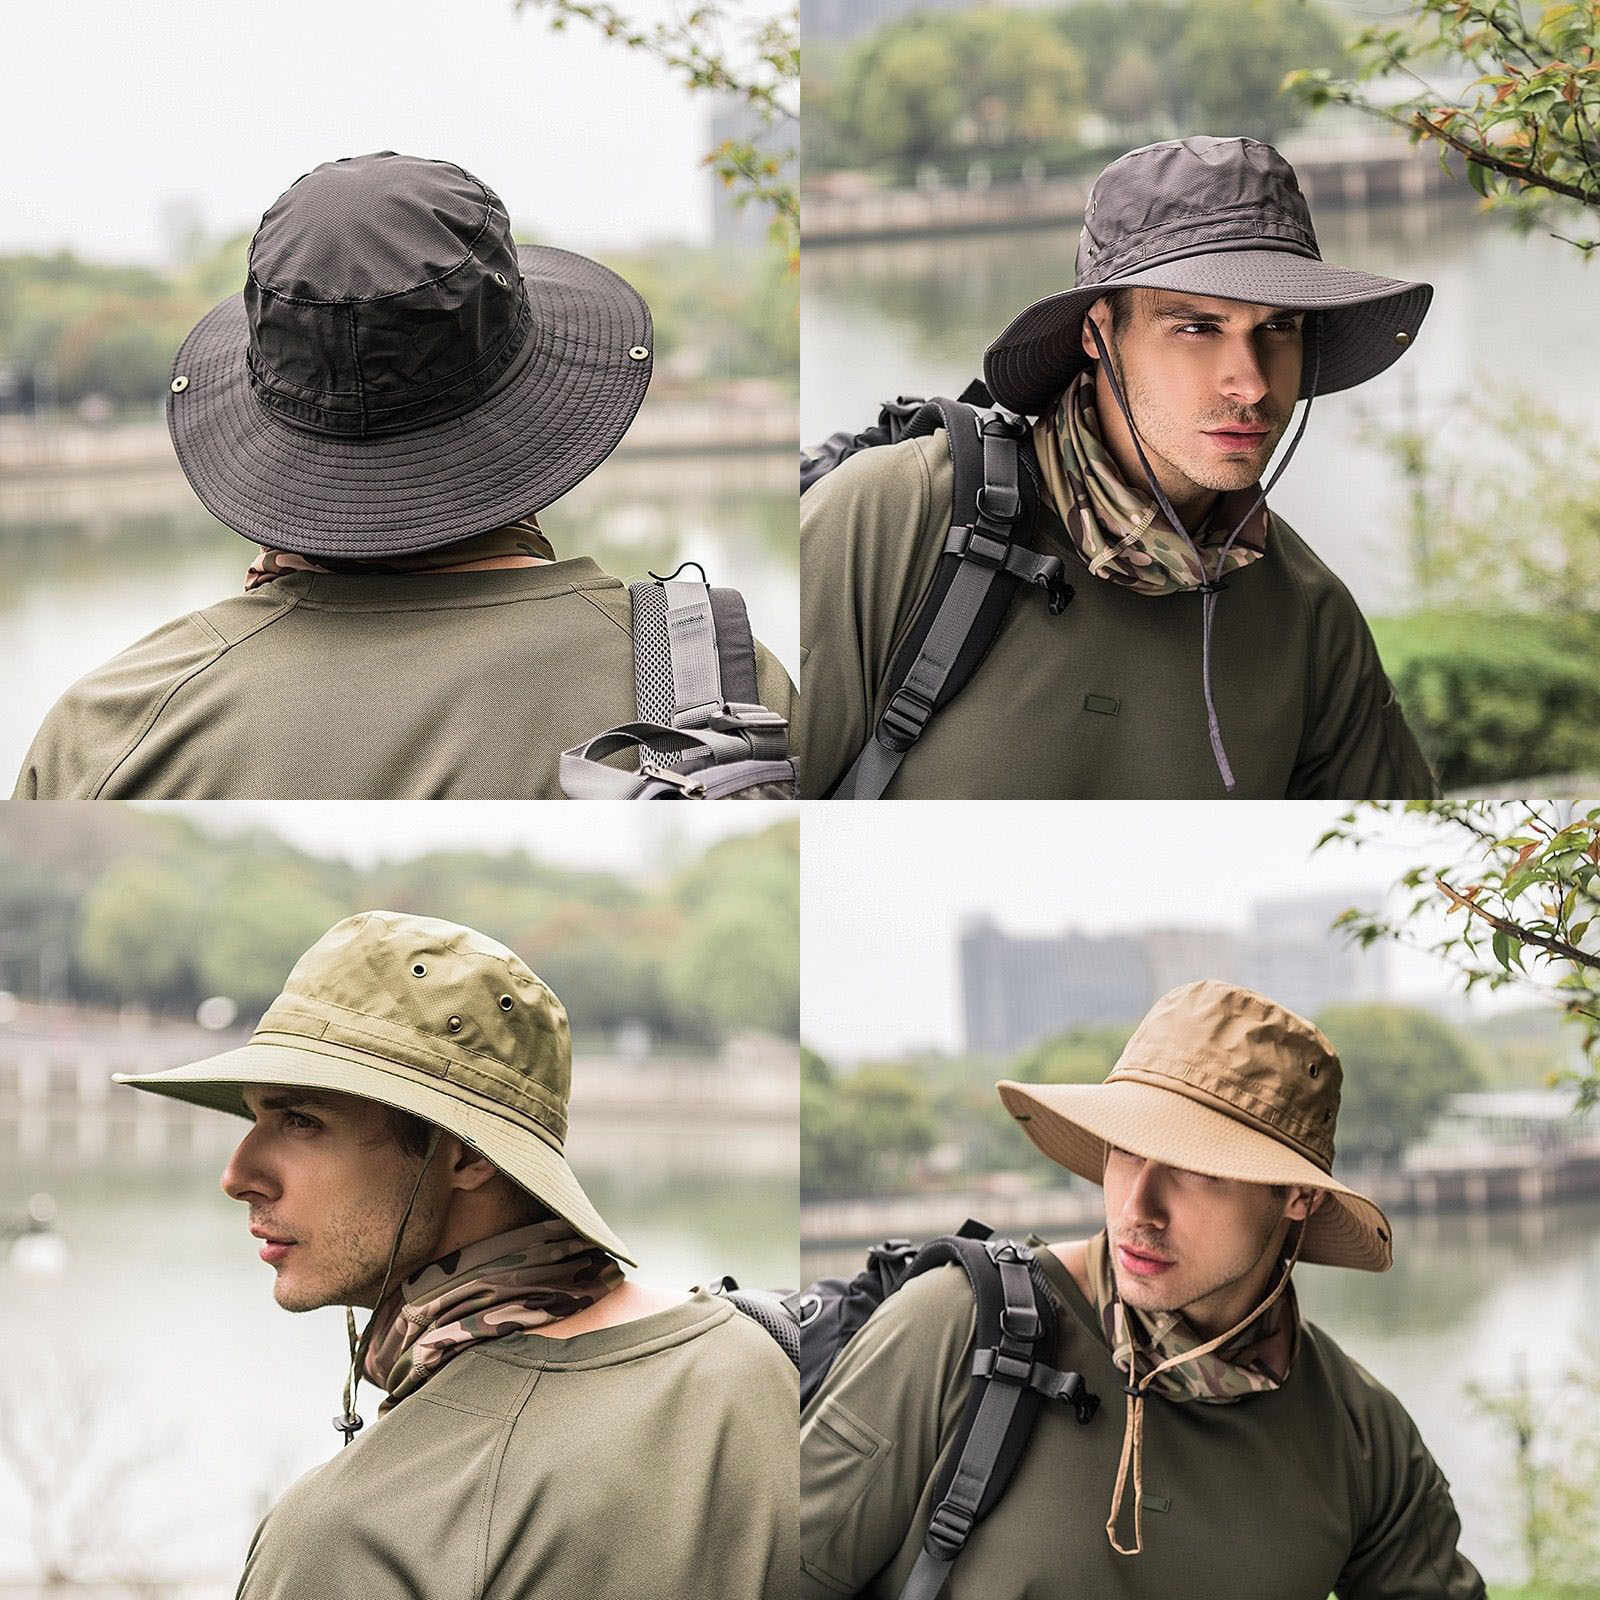 a01926e1 New Hot Boonie Bucket Hat Fisherman Wide Brim Safari Cap Pure Cap Unisex Sun  Hats Lace